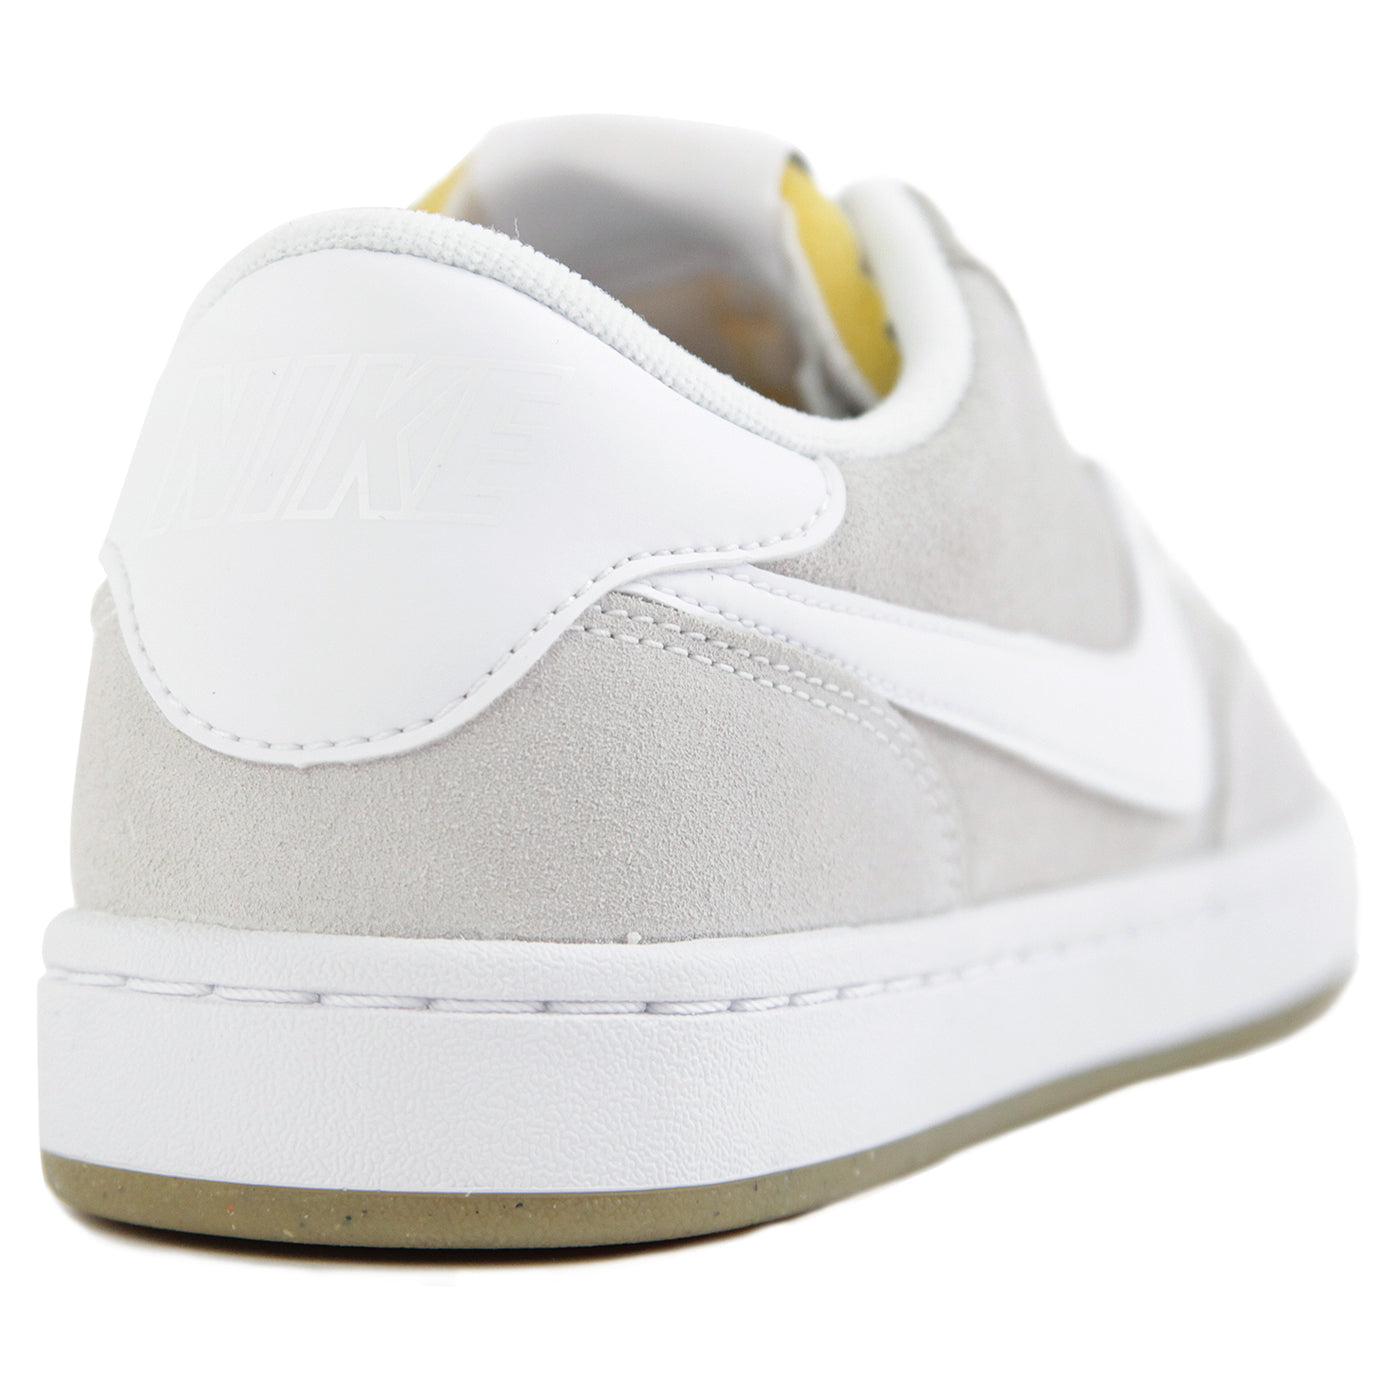 official photos 7b4e5 16db0 Nike SB FC Classic Shoes - Summit White   Summit White - White. Size Charts